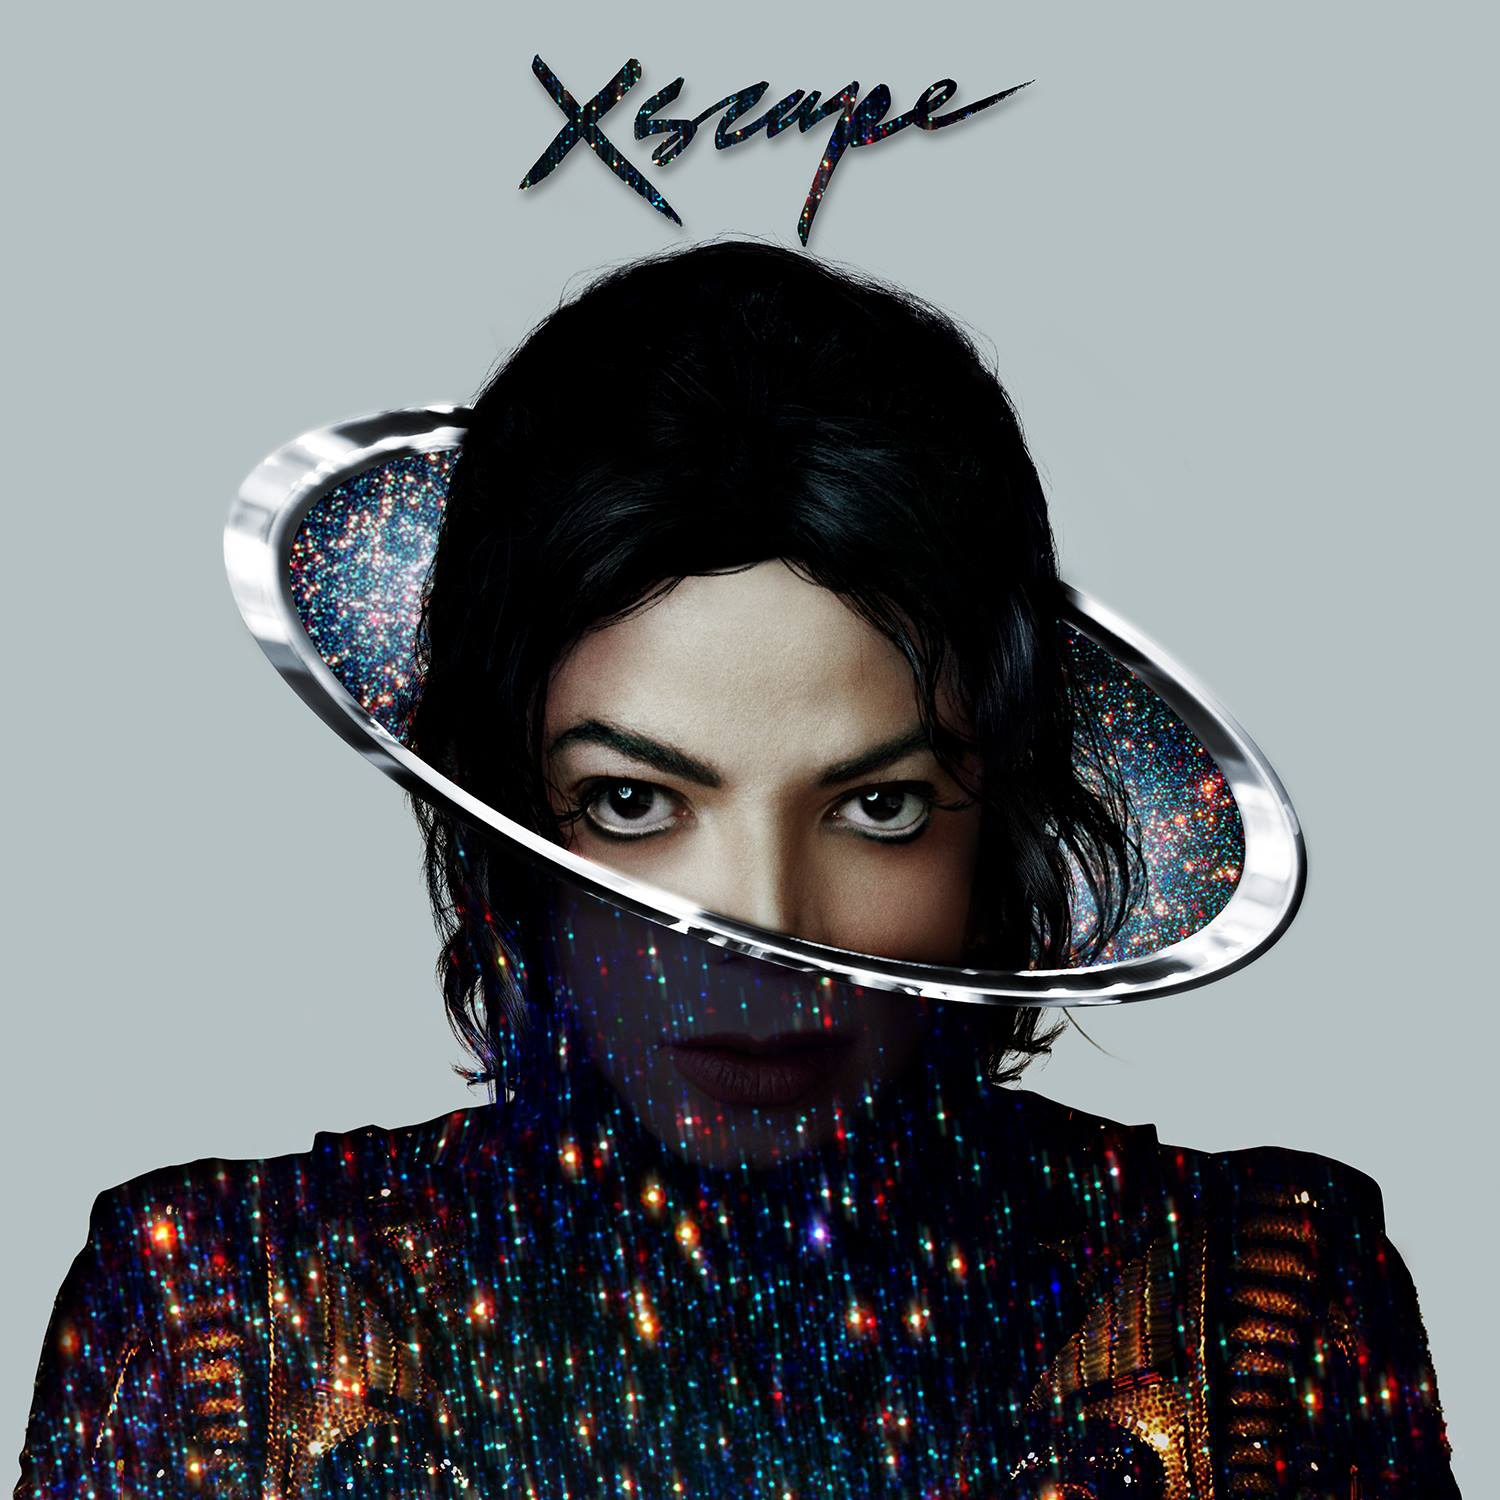 Michael Jackson Xscape Michael Jacksons Posthumous Song, Xscape, Released